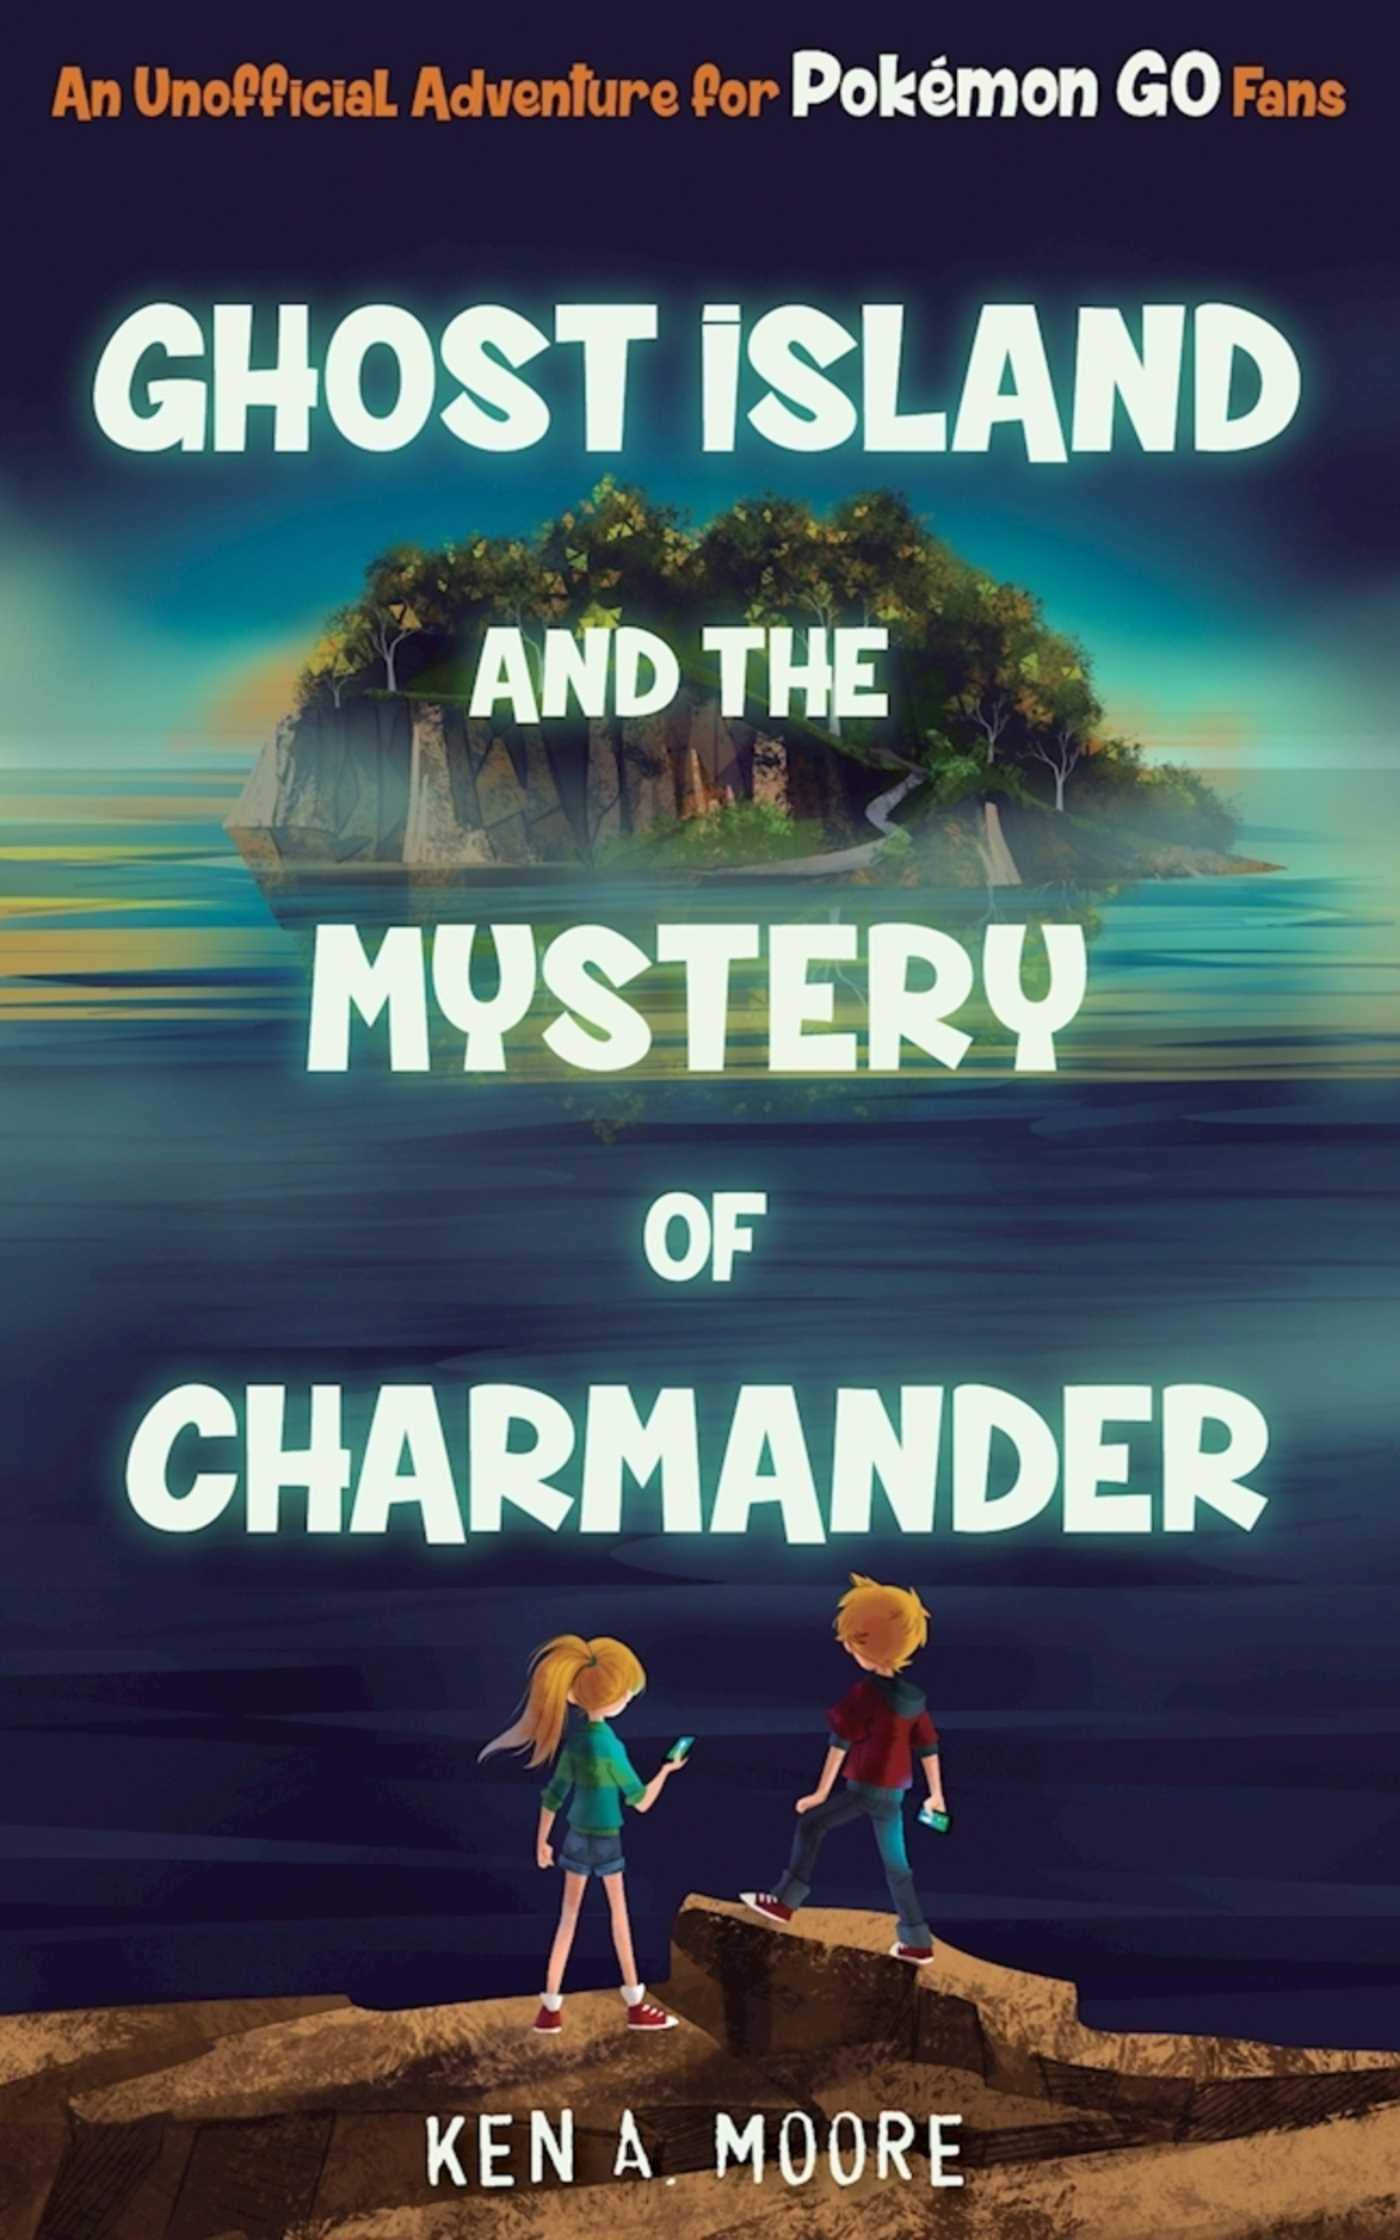 Ghost Island and the Mystery of Charmander: An Unofficial